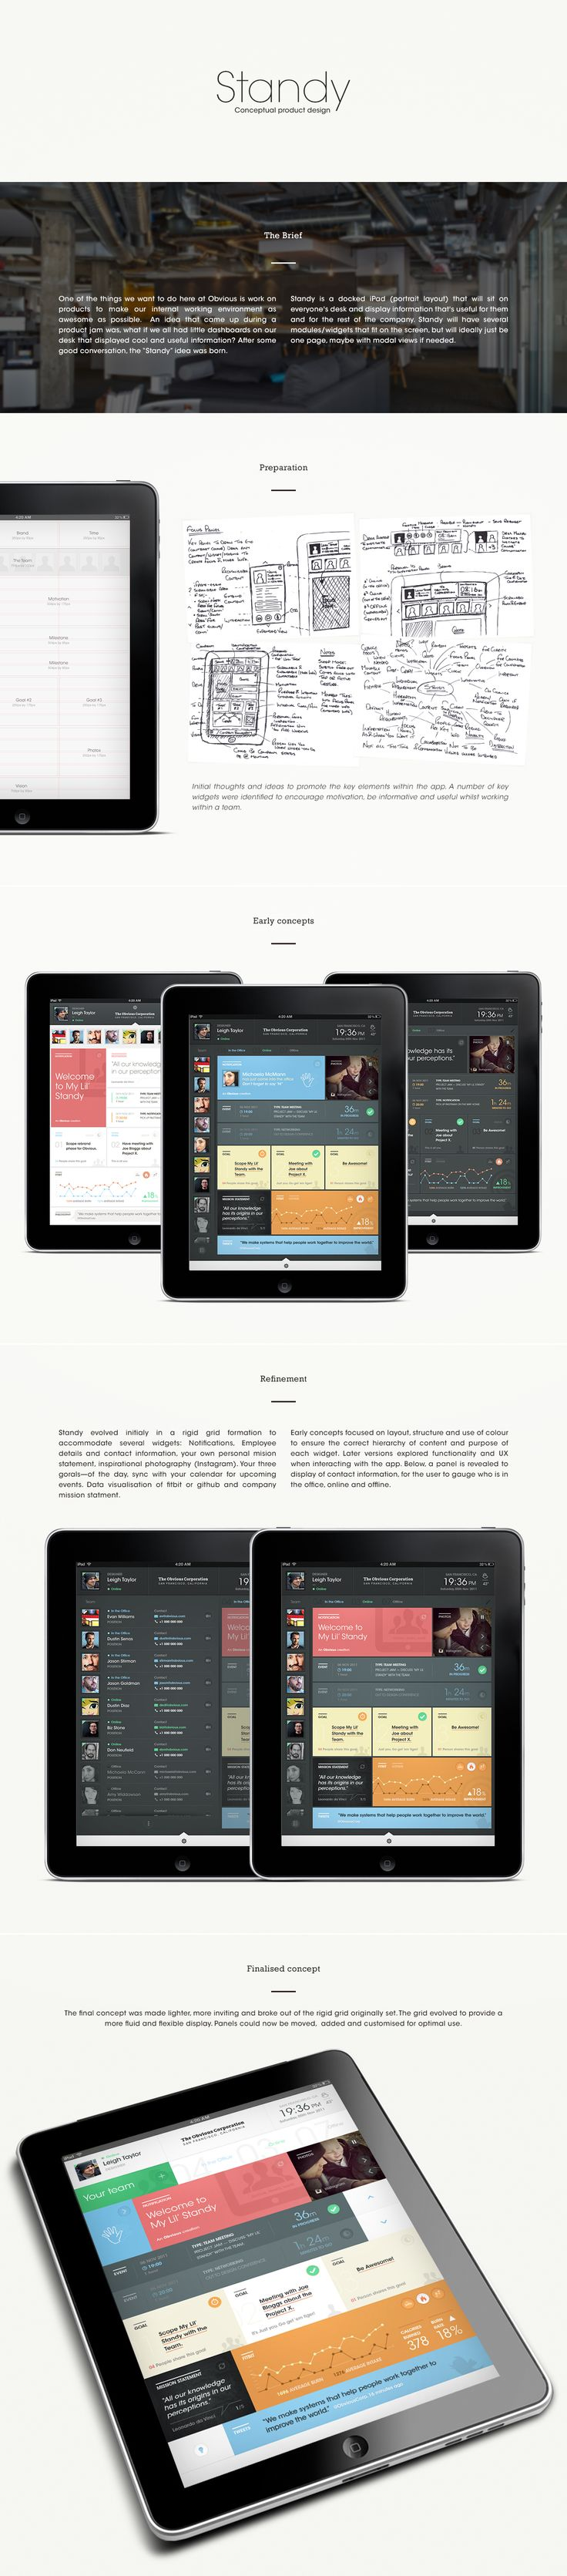 Dribbble - standy-full.jpg by Leigh Taylor